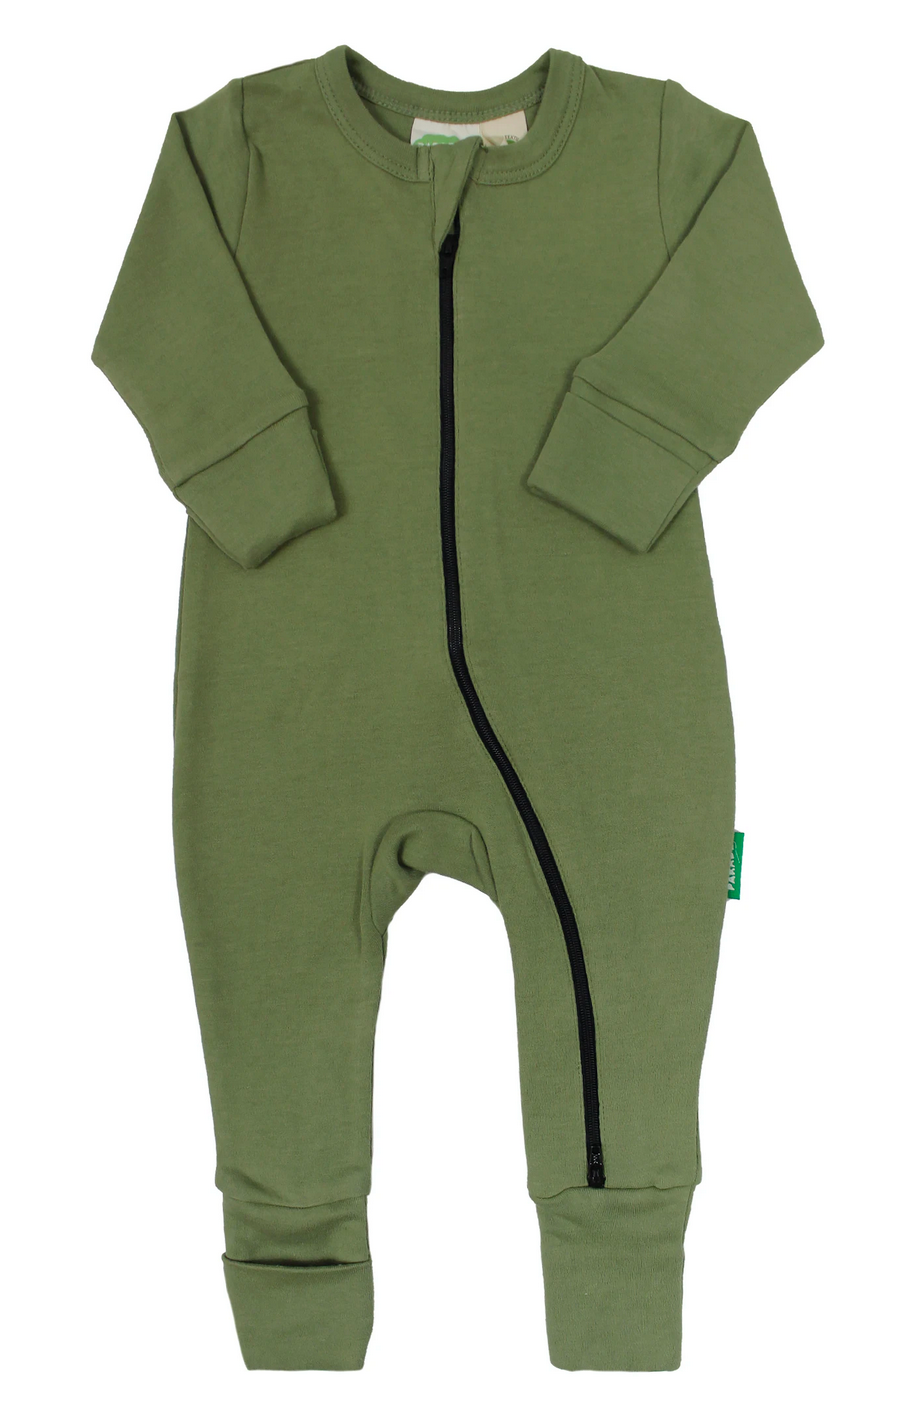 Essential Basic 2-Way Zippy Romper Olive